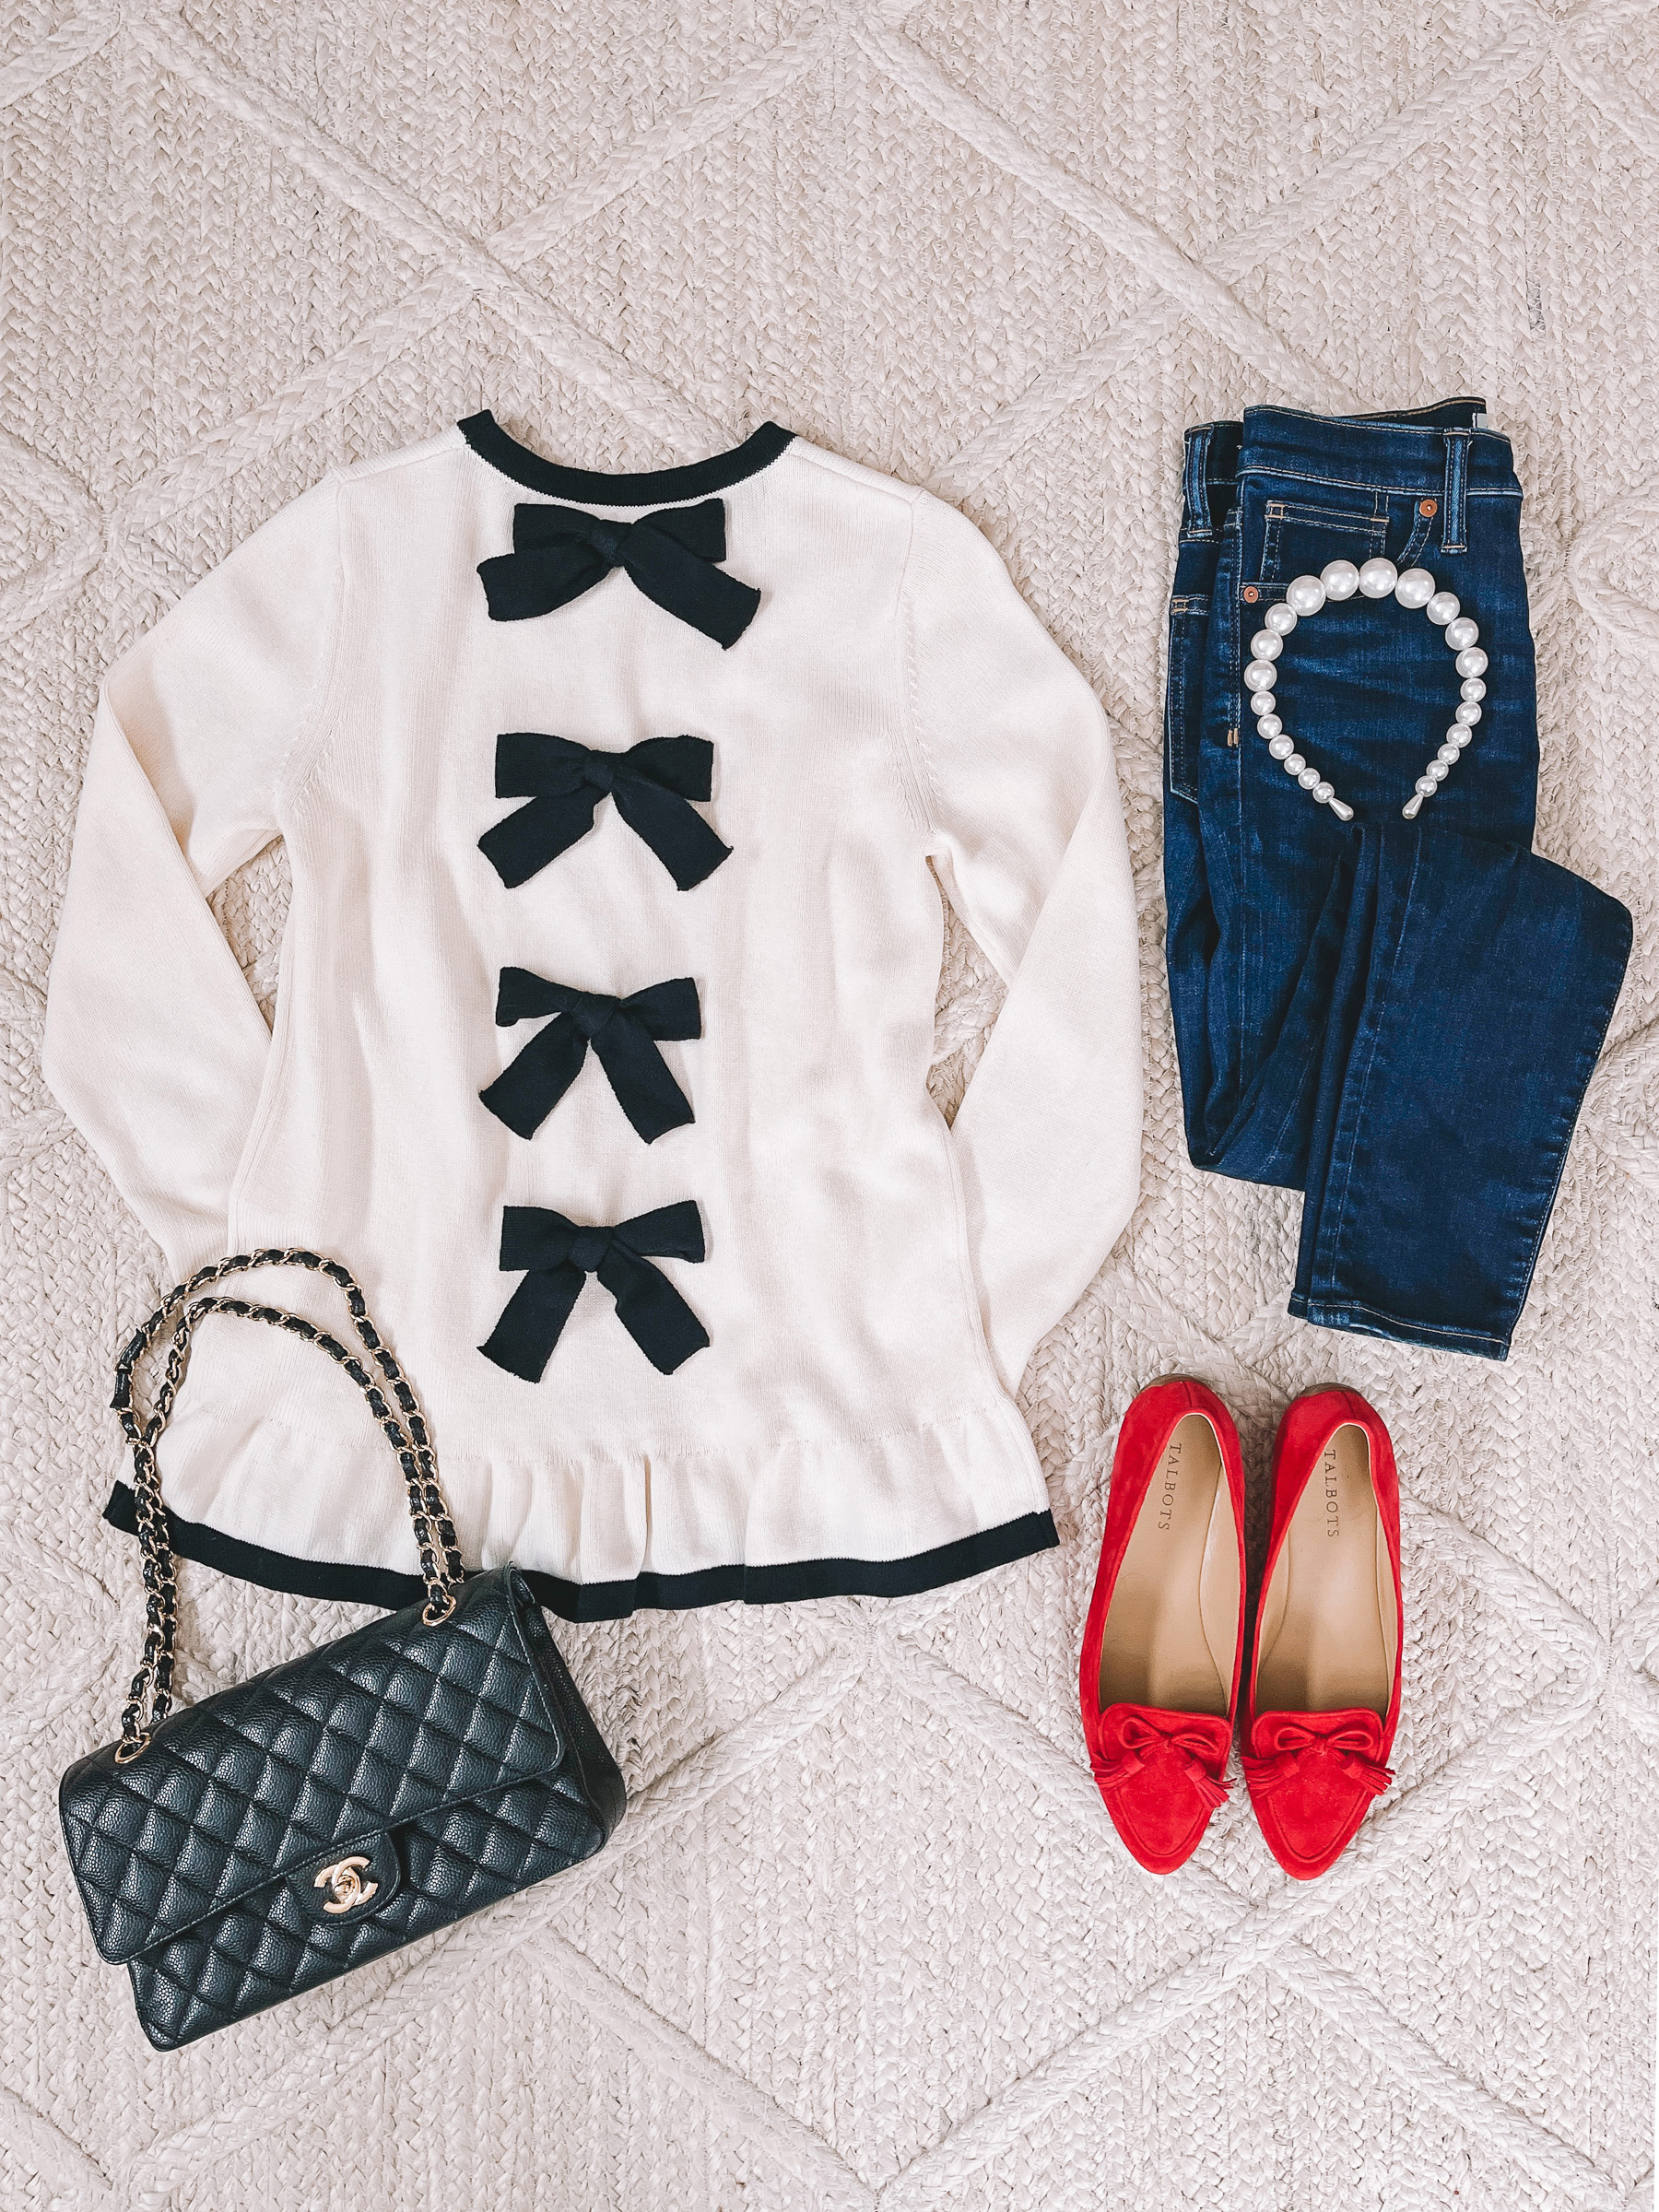 Sail to Sable x Jenn Lake Bow Sweater   10 Preppy Valentines Day Outfits